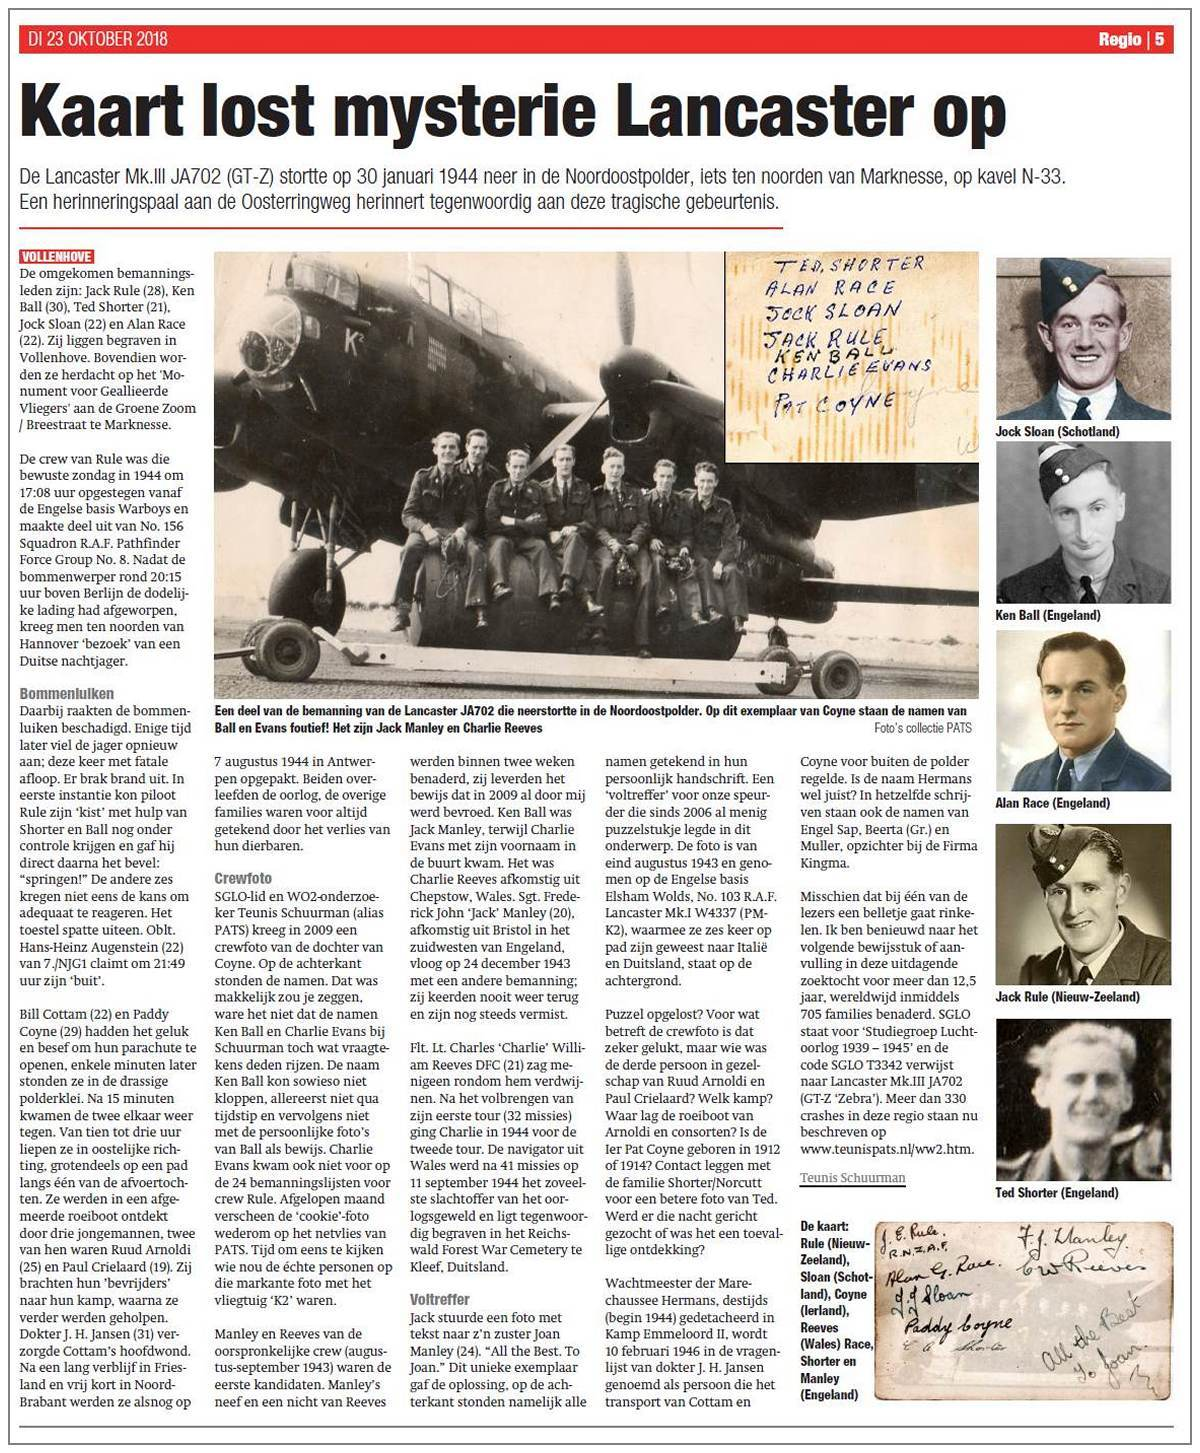 23 Oct 2018 - article about finding of the right names of the original crew Rule (Aug 1943)